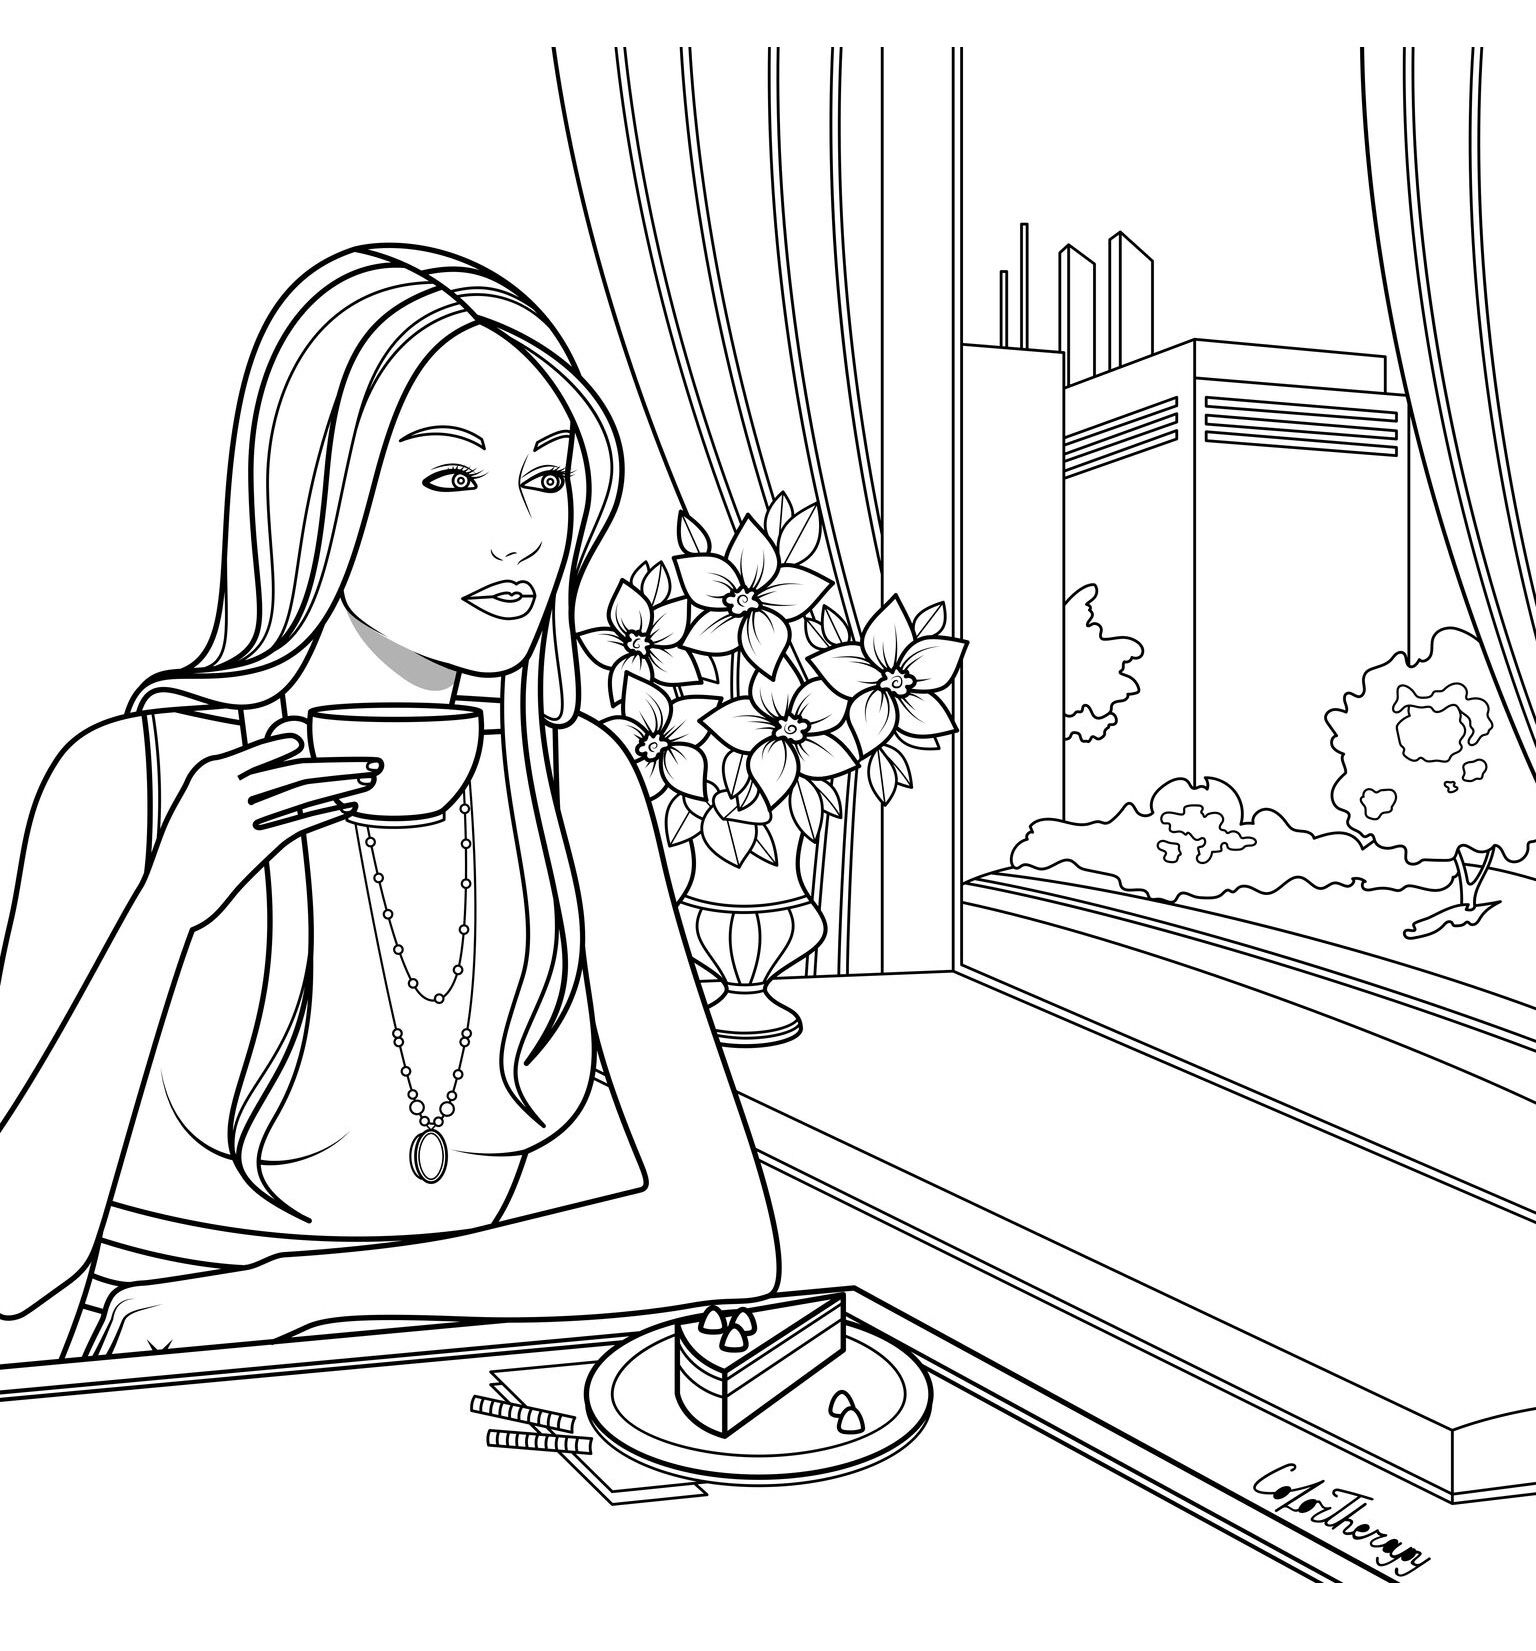 The Sneak Peek For The Next Gift Of The Day Tomorrow Do You Like This One Woman Cafe Coloring Pages Easy Coloring Pages Barbie Coloring Pages